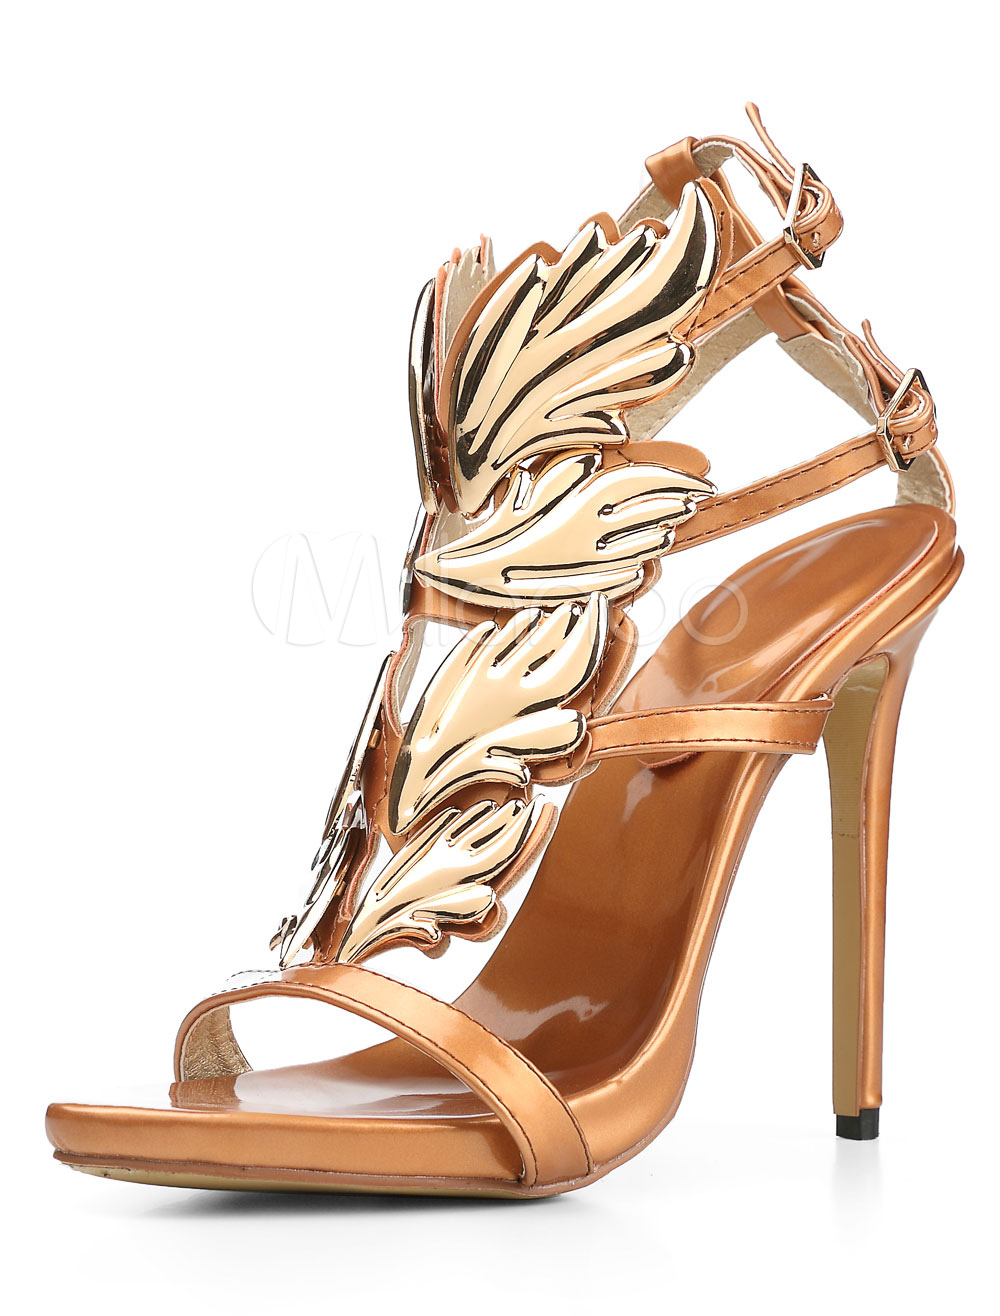 Pink Patent PU Dress Sandals For Ladies